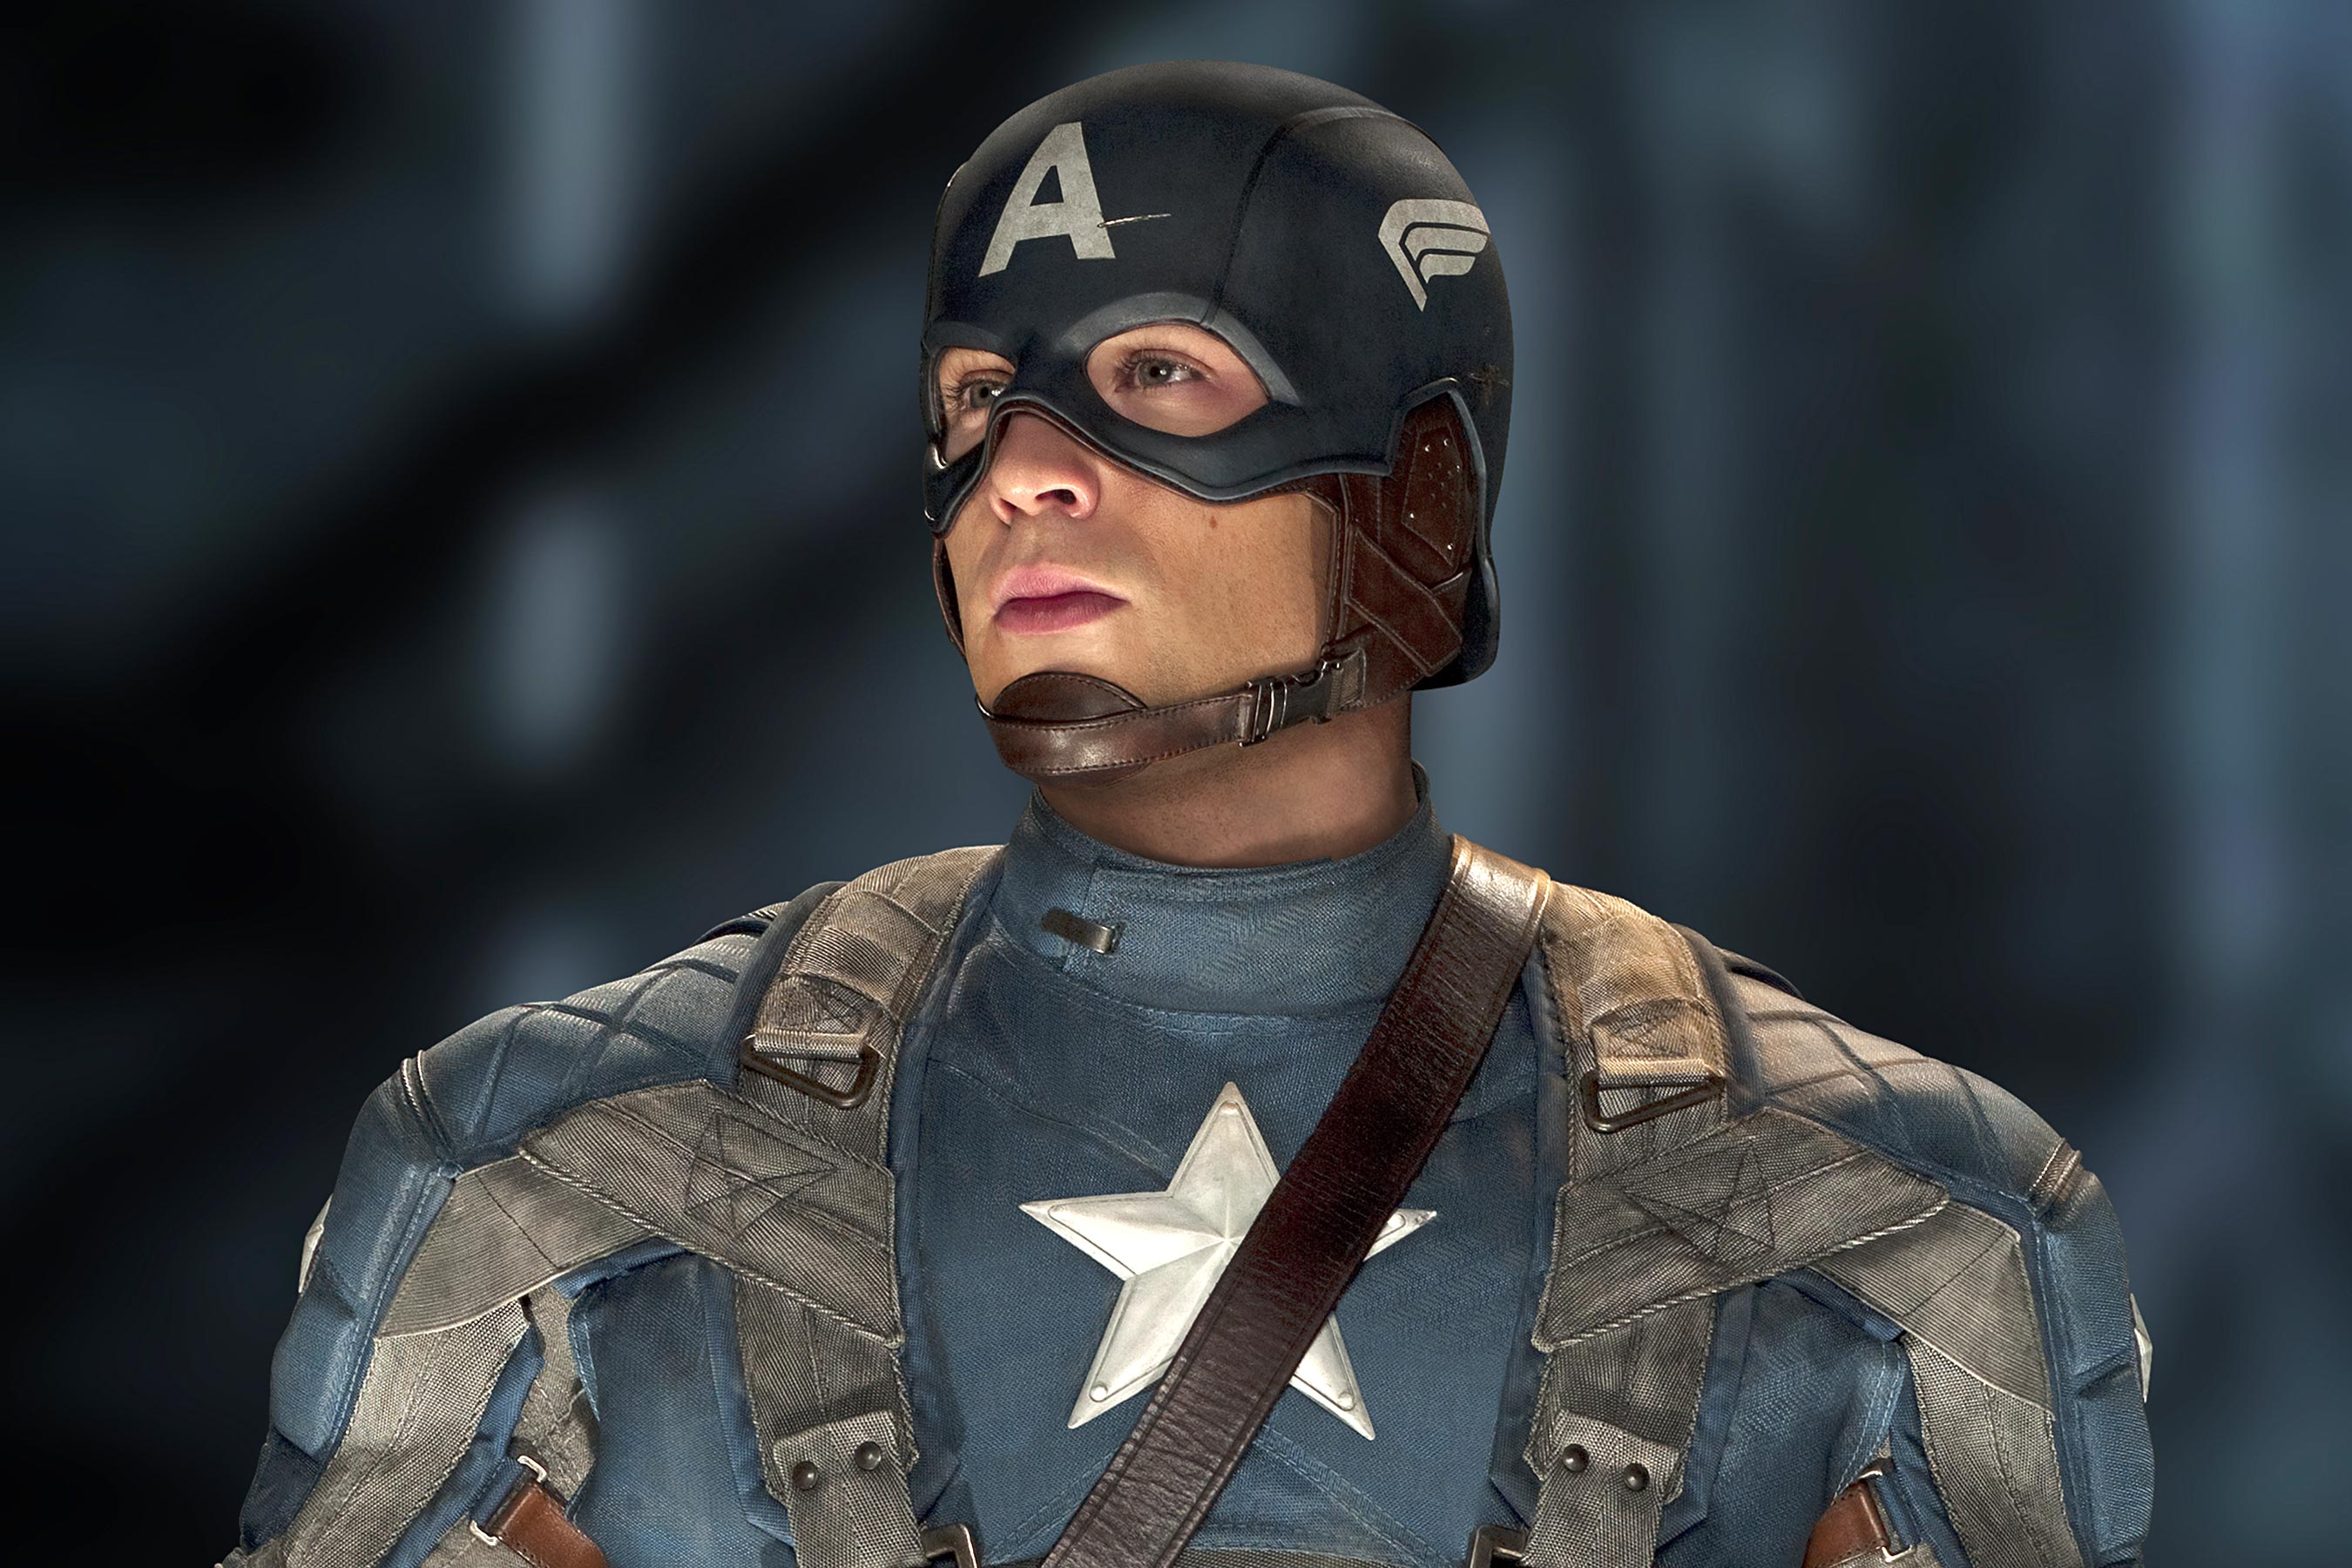 Revisiting Captain America before Avengers Infinity War